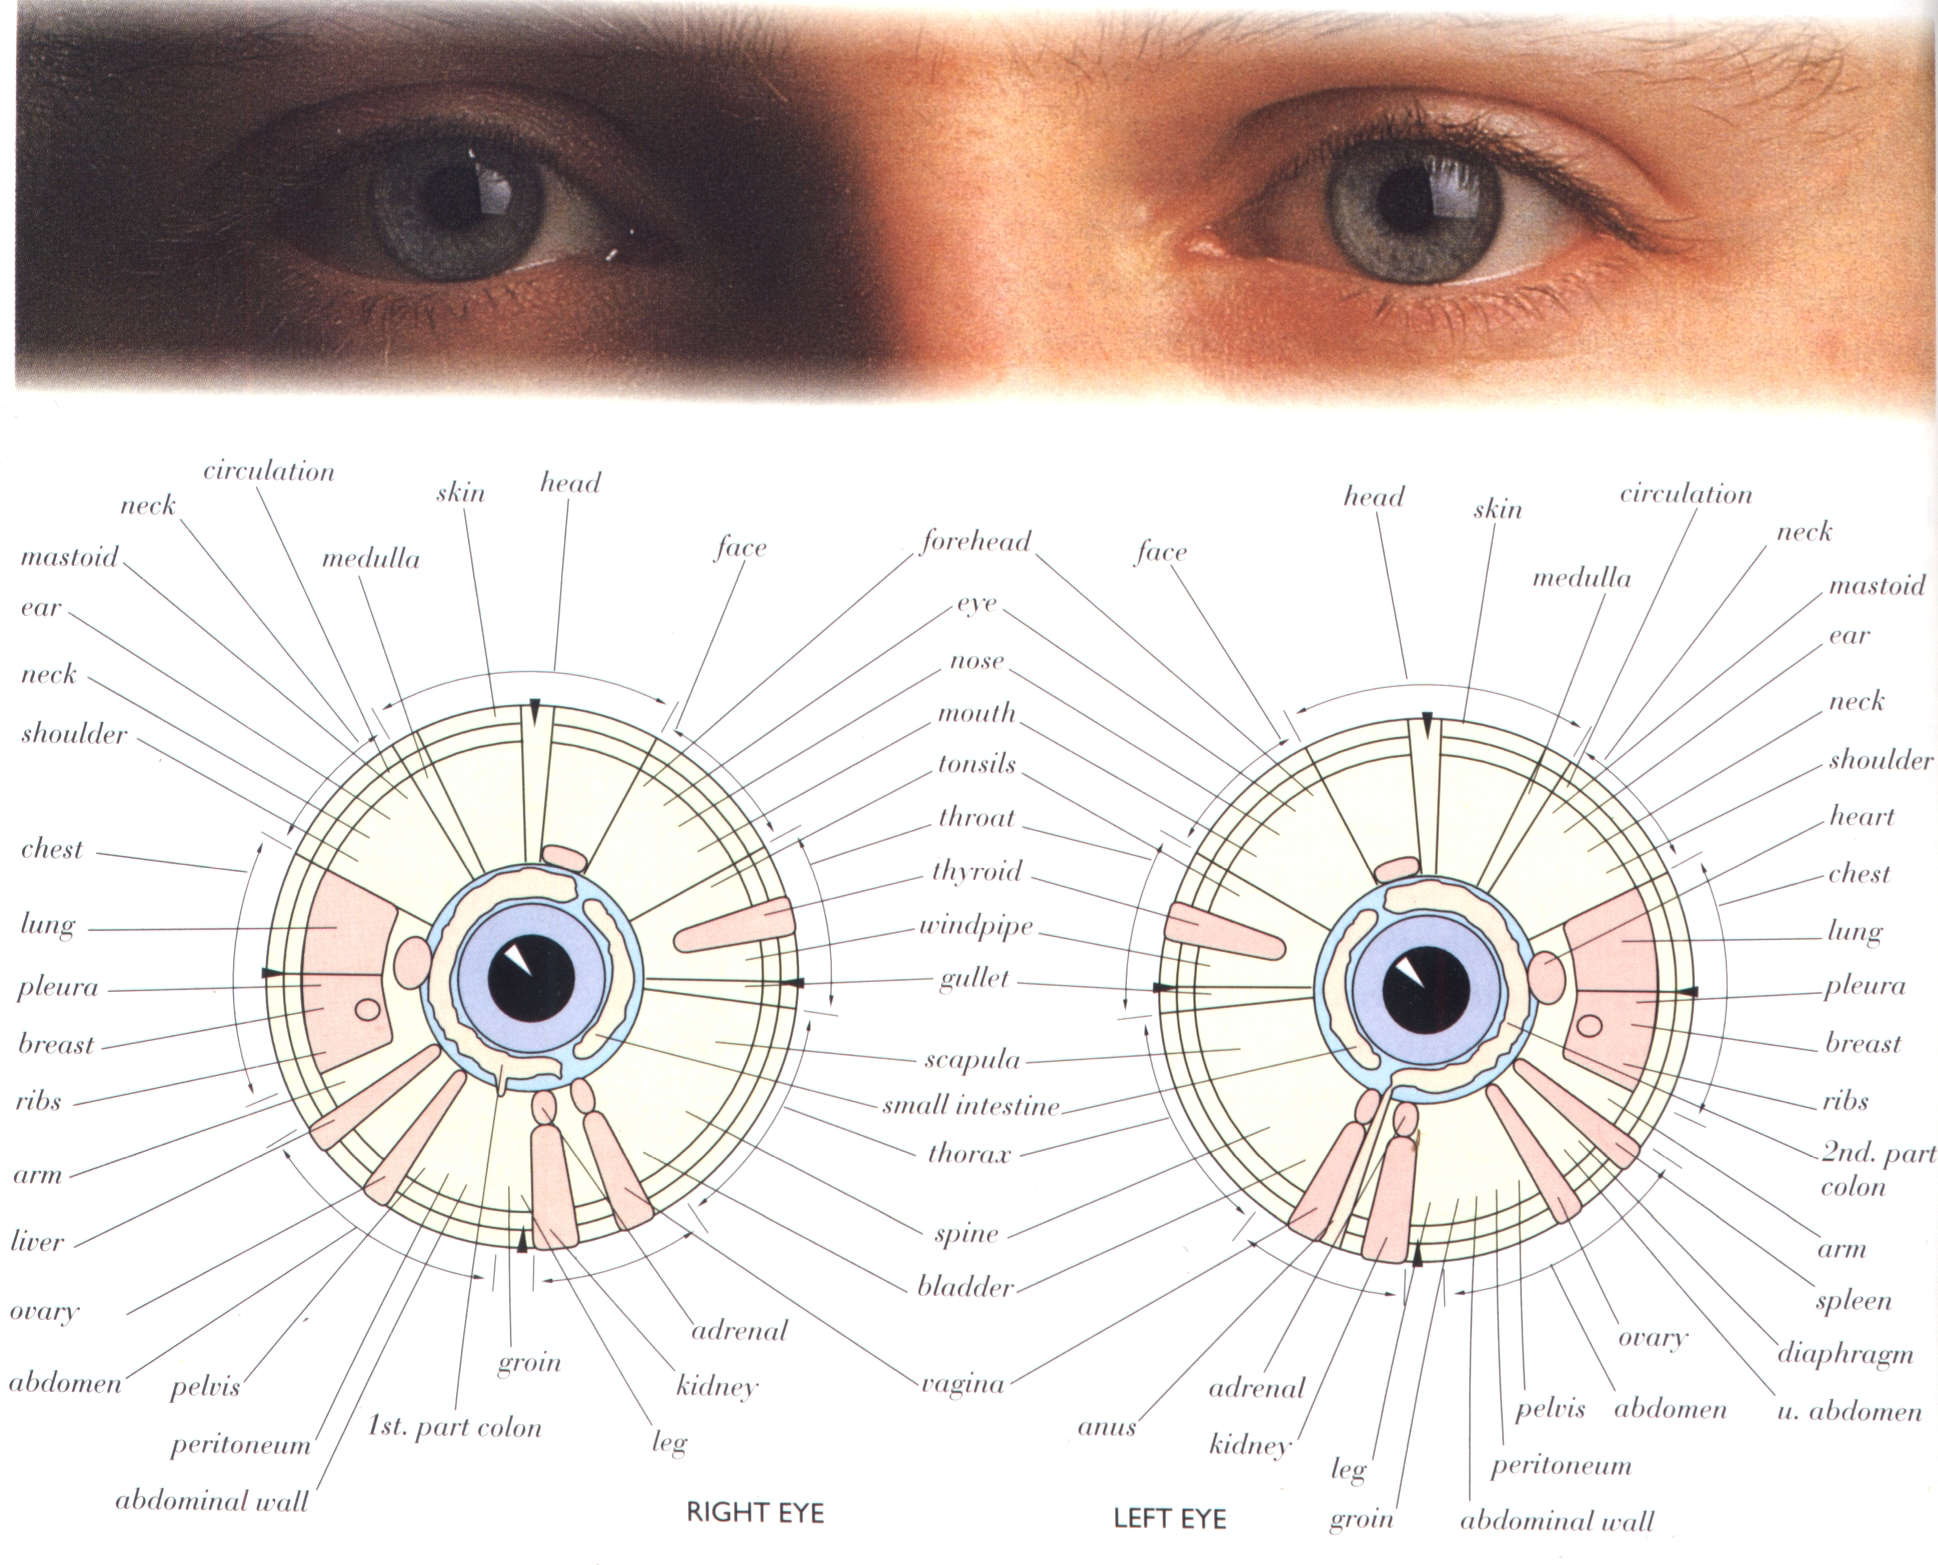 Hhcmi according to iridologists the iris of the eye represents hhcmi according to iridologists the iris of the eye represents a kind of map of human glands organs and systems of the whole human body geenschuldenfo Choice Image